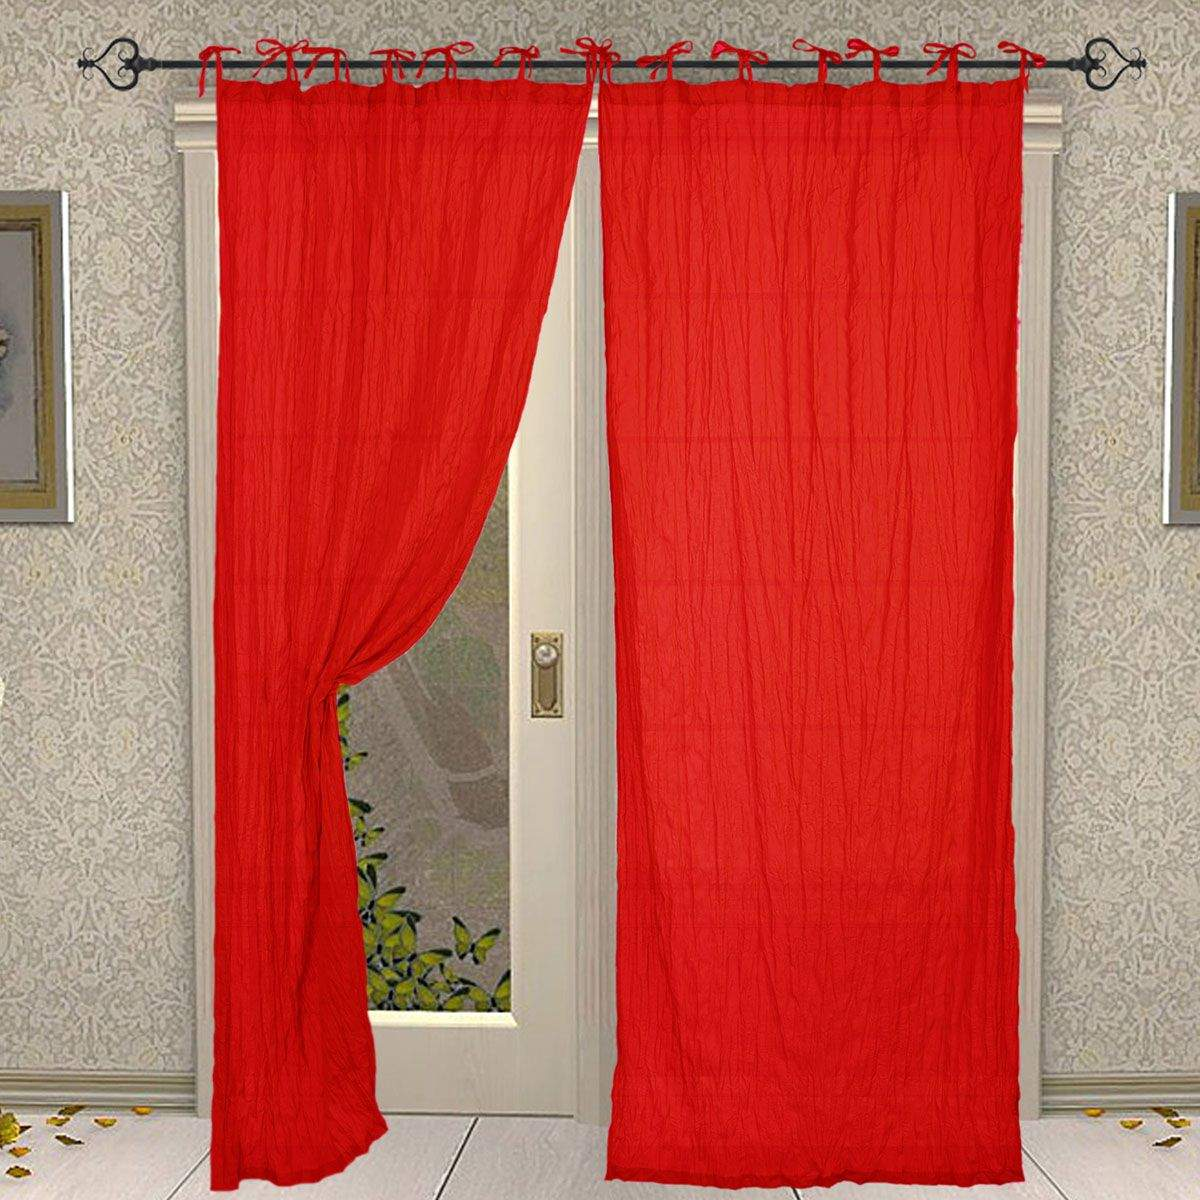 Rod Pocket Cotton Plain Solid Red Curtain for Windows and Door